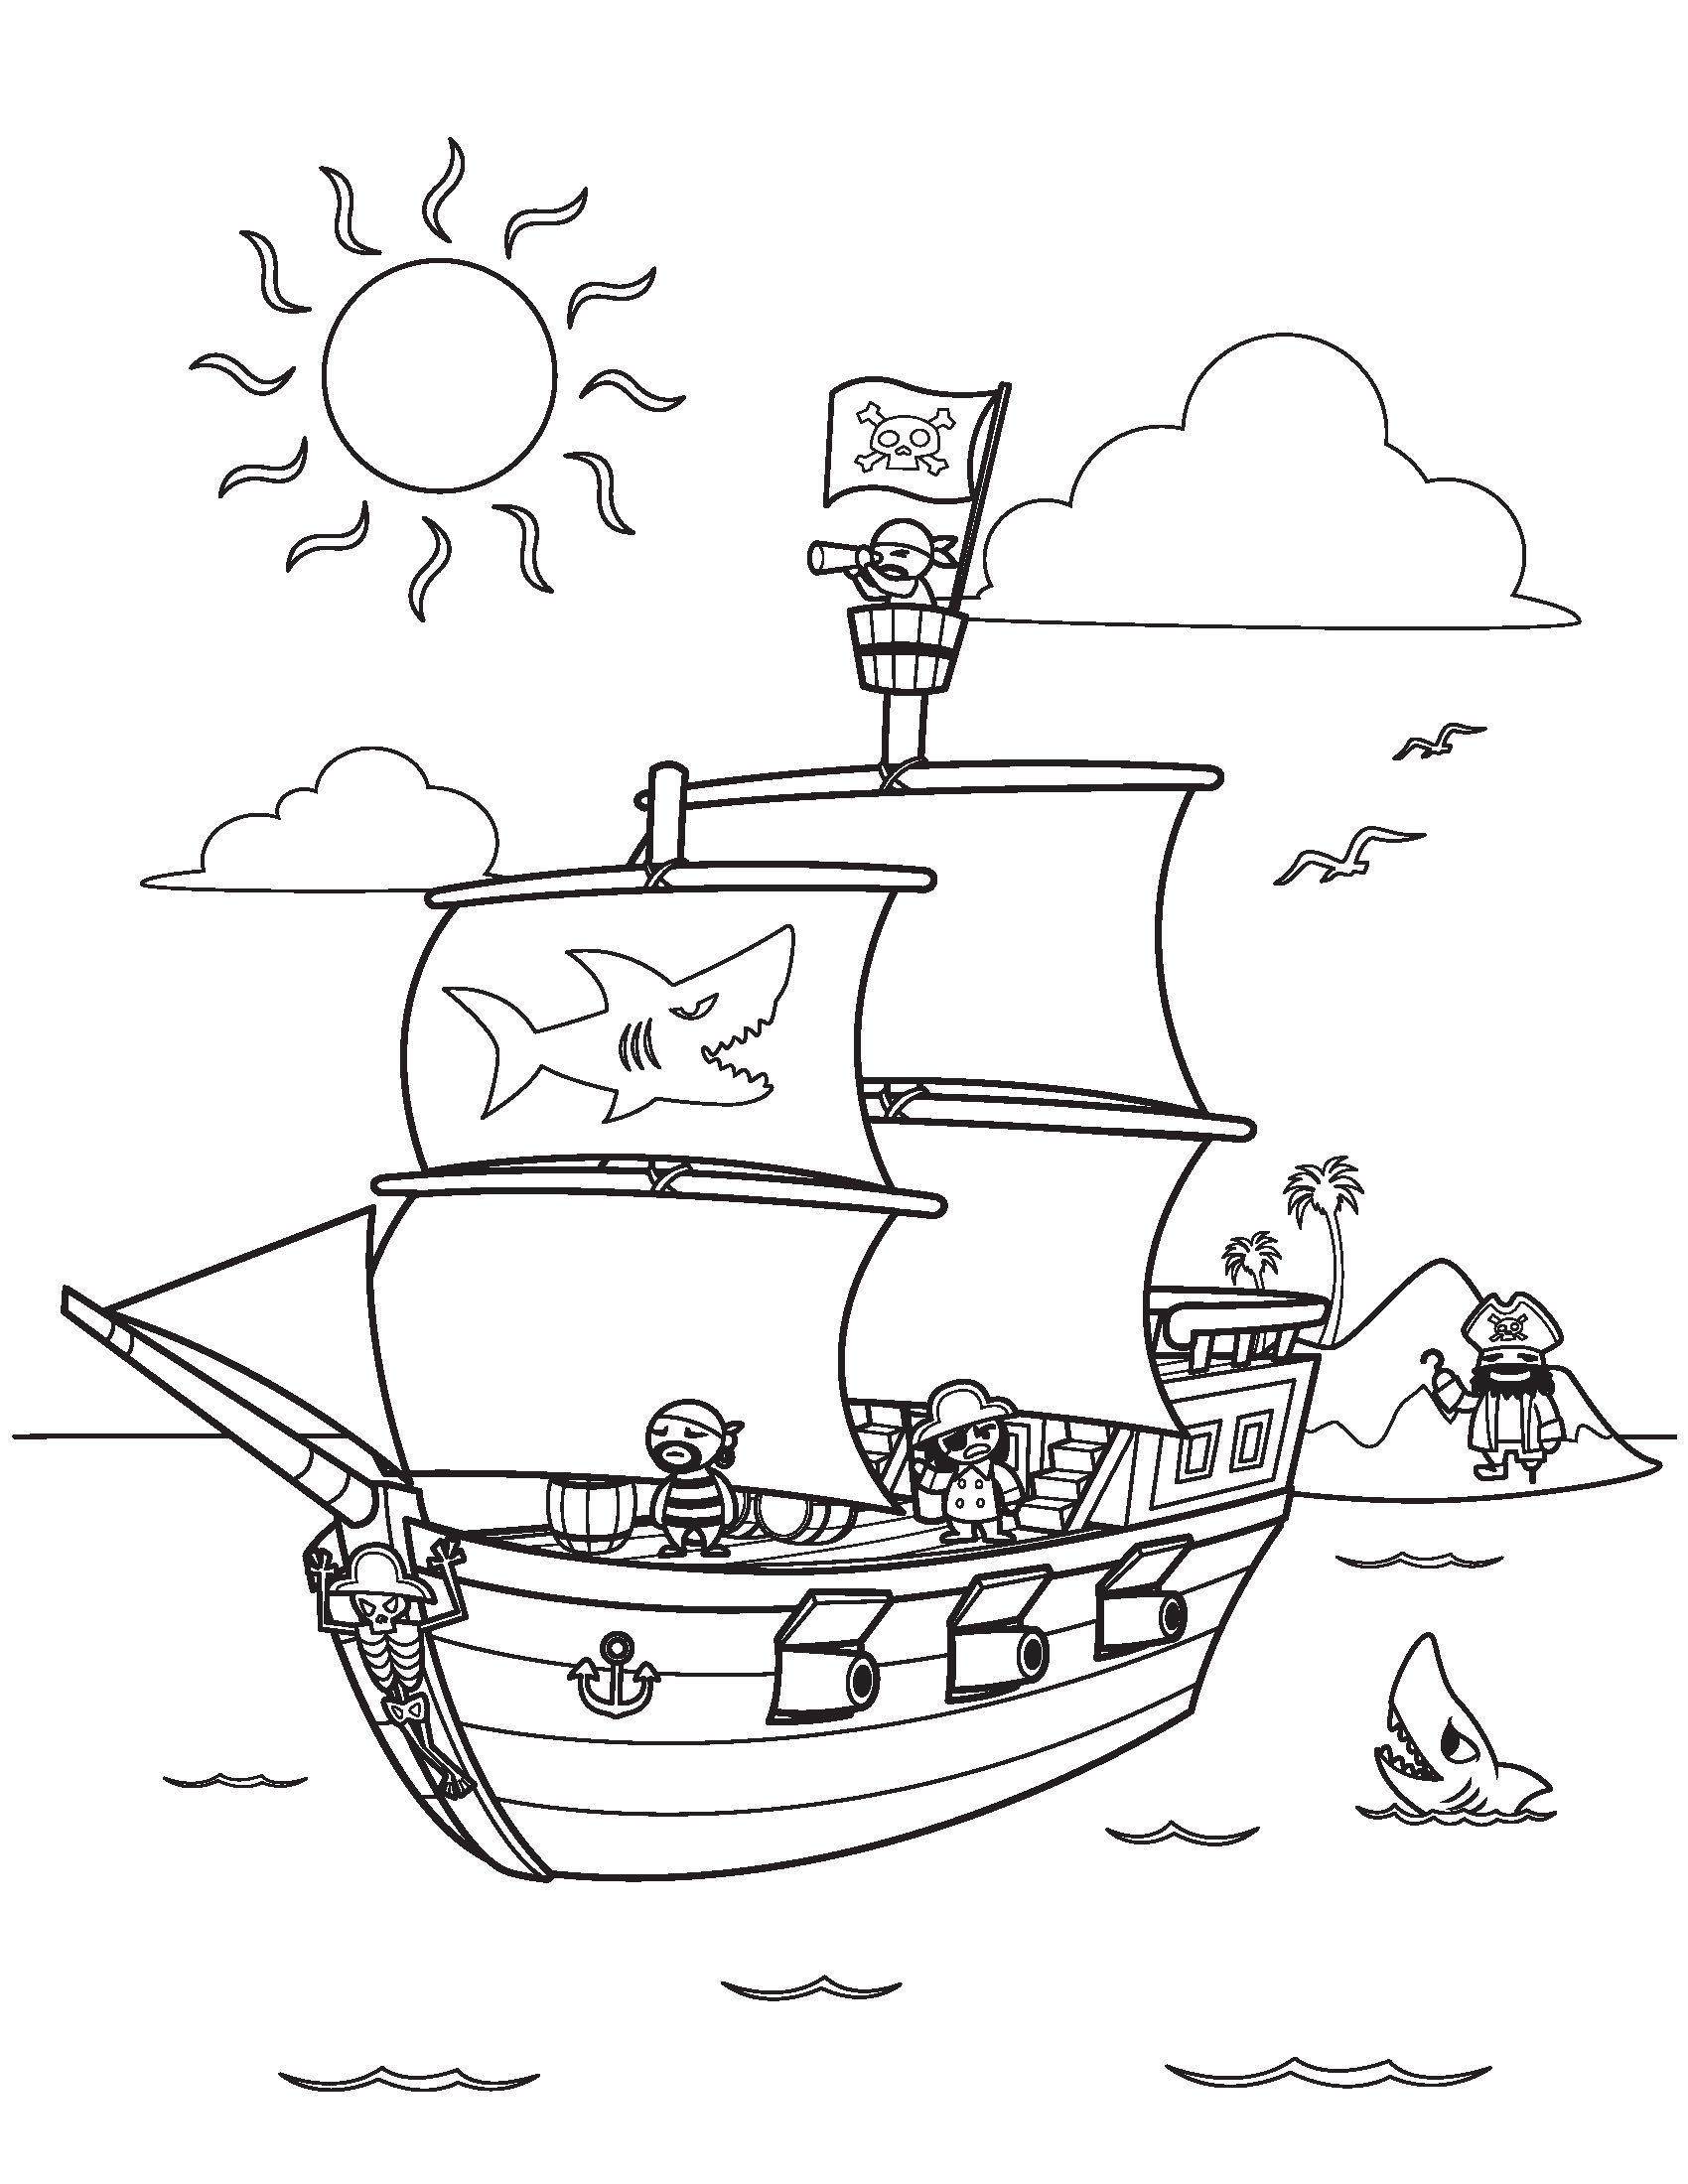 Pirate Ship Coloring Pages Kidsfreecoloring